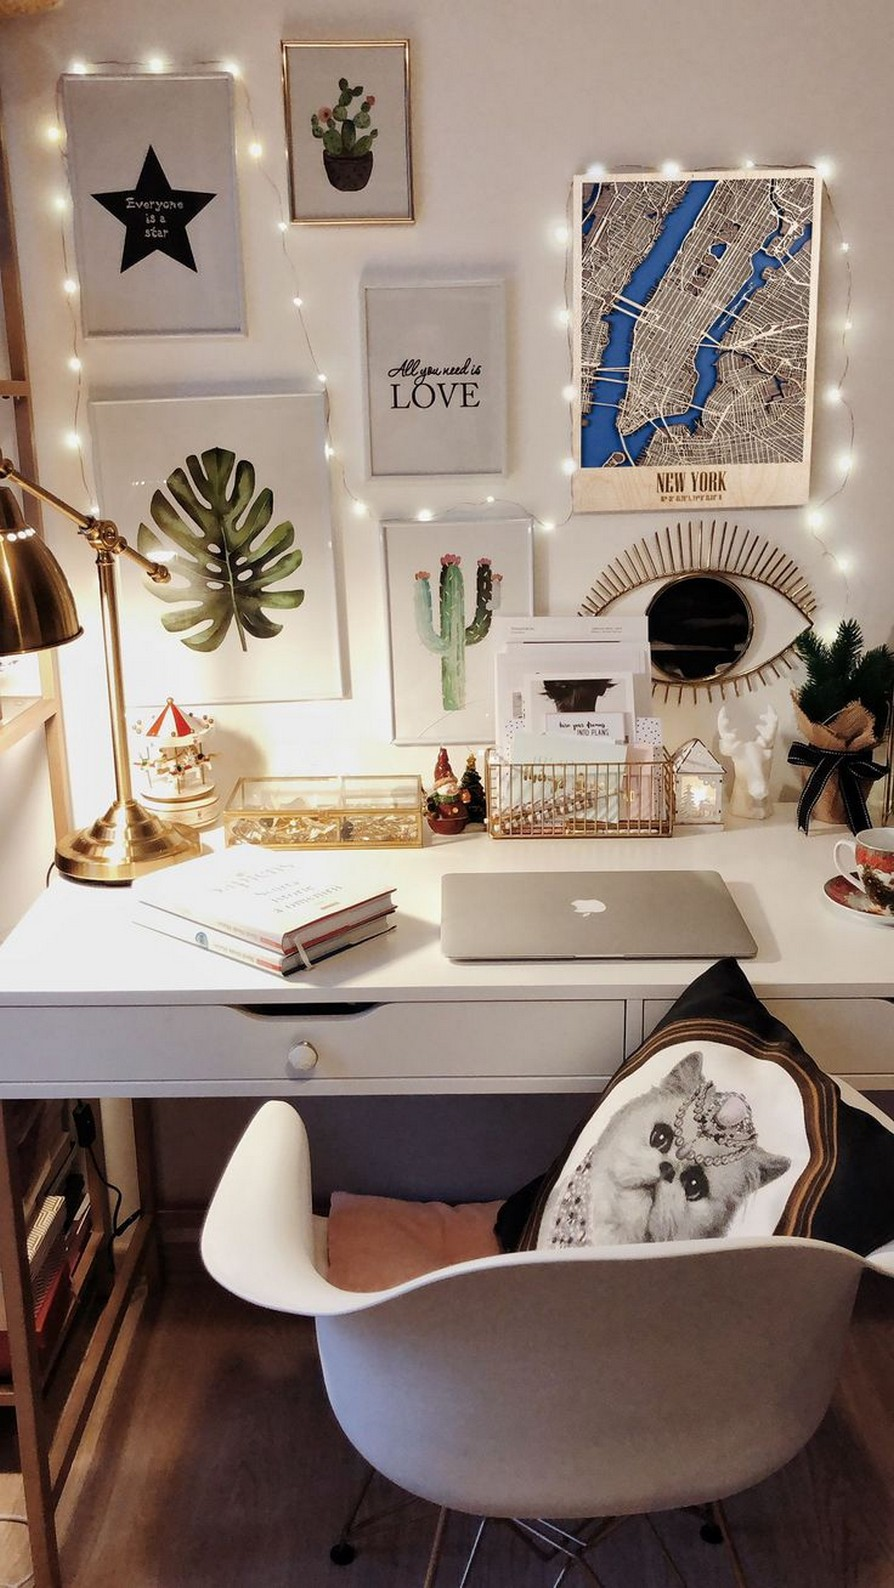 45 ideas to decorate your room with plants 32